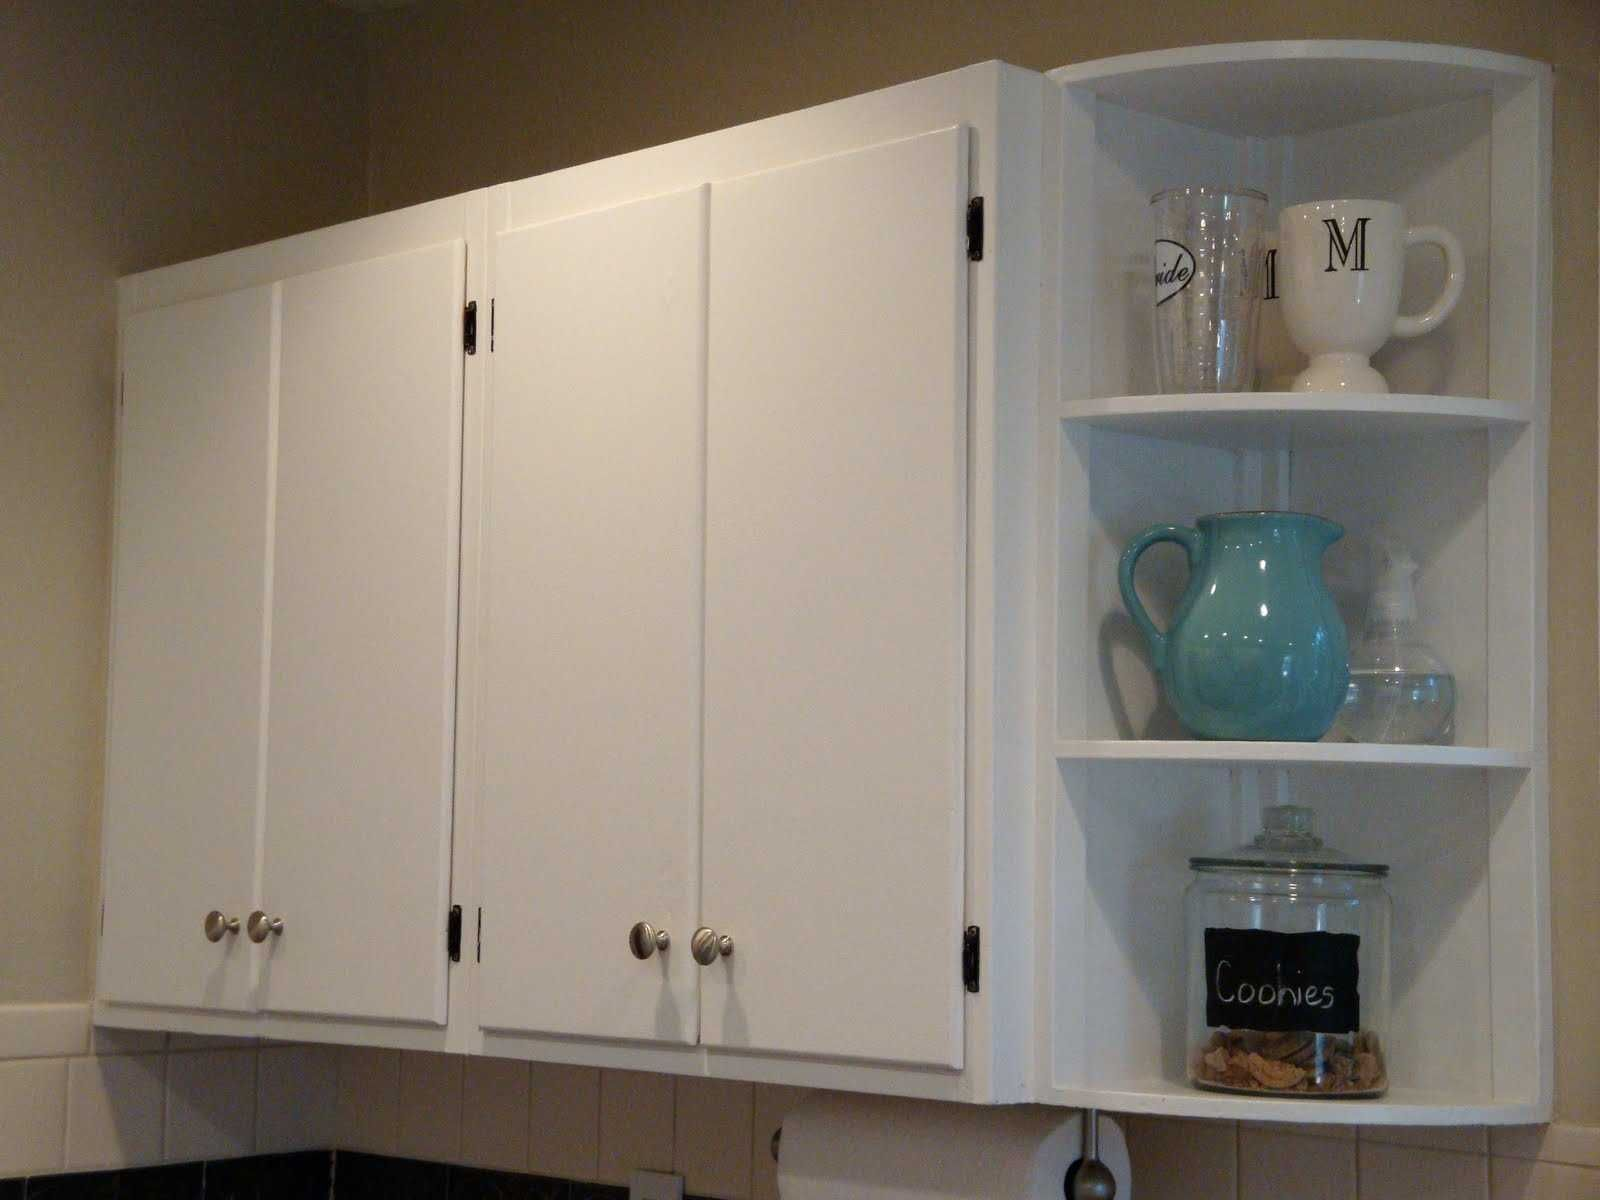 Superb Discount Kitchen Cabinets To Improve Your Kitchenu0027s Look